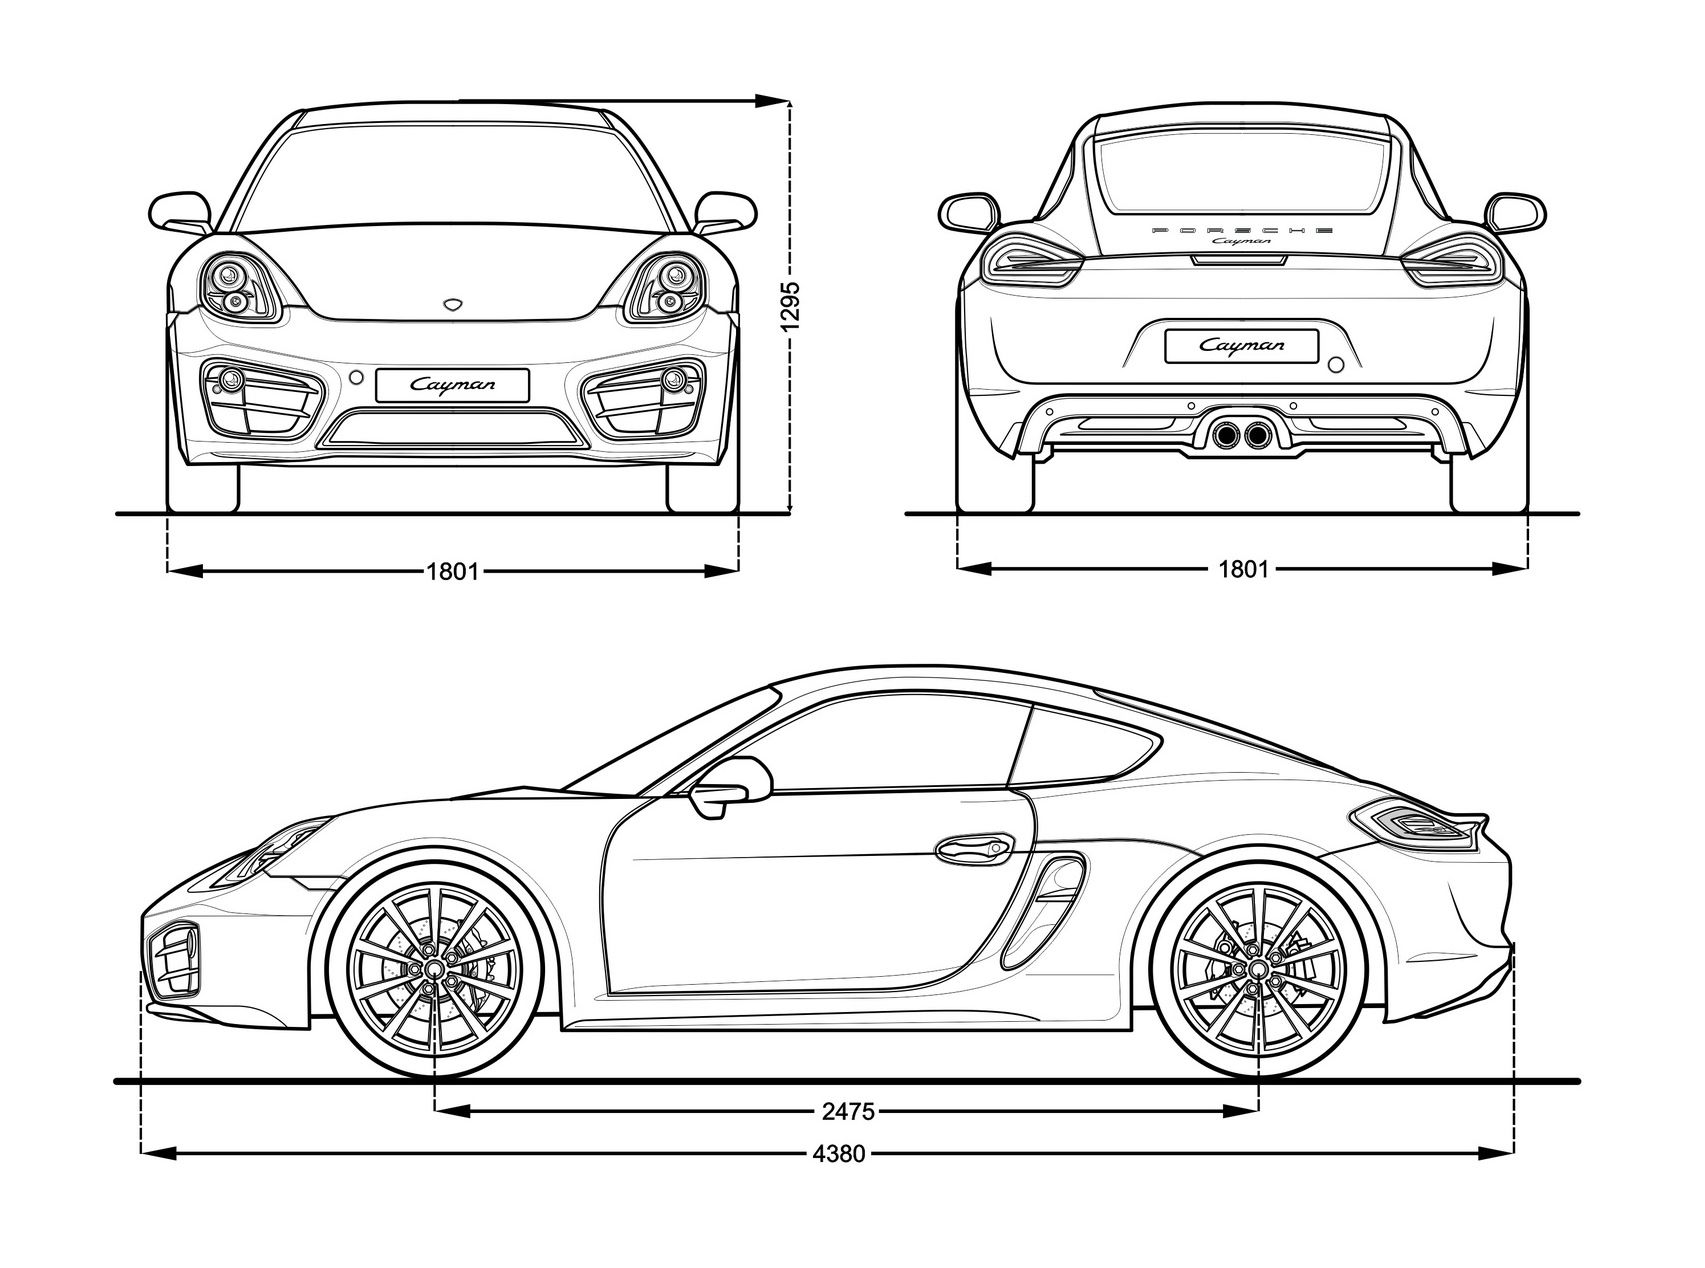 Porsche cayman s blueprint pinterest car cake porsche cayman s blueprint malvernweather Gallery